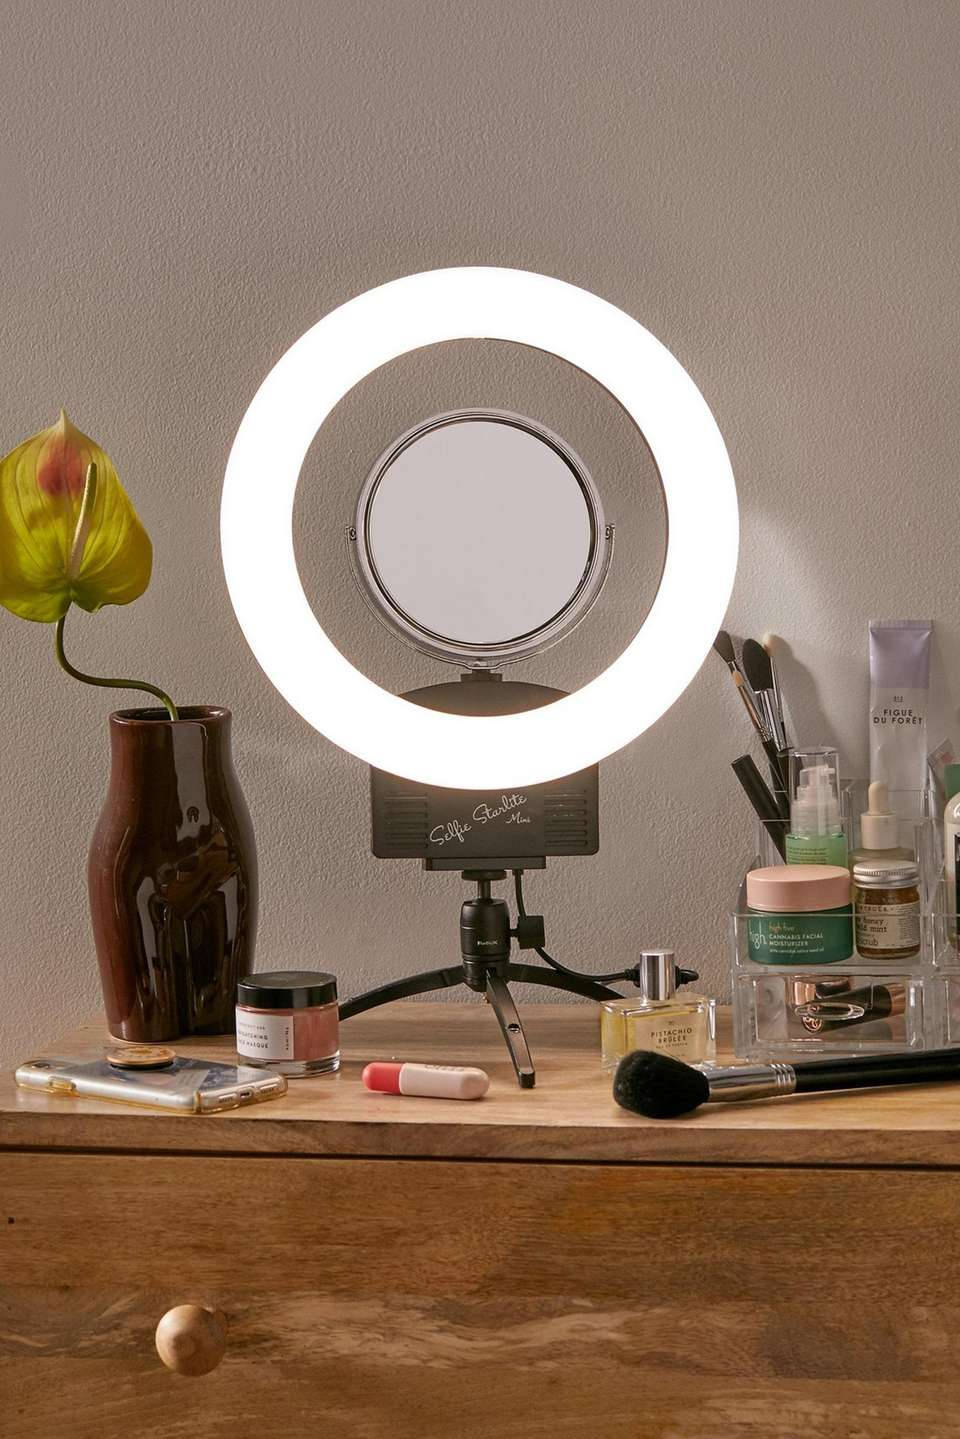 You'll have the perfect lighting for your next